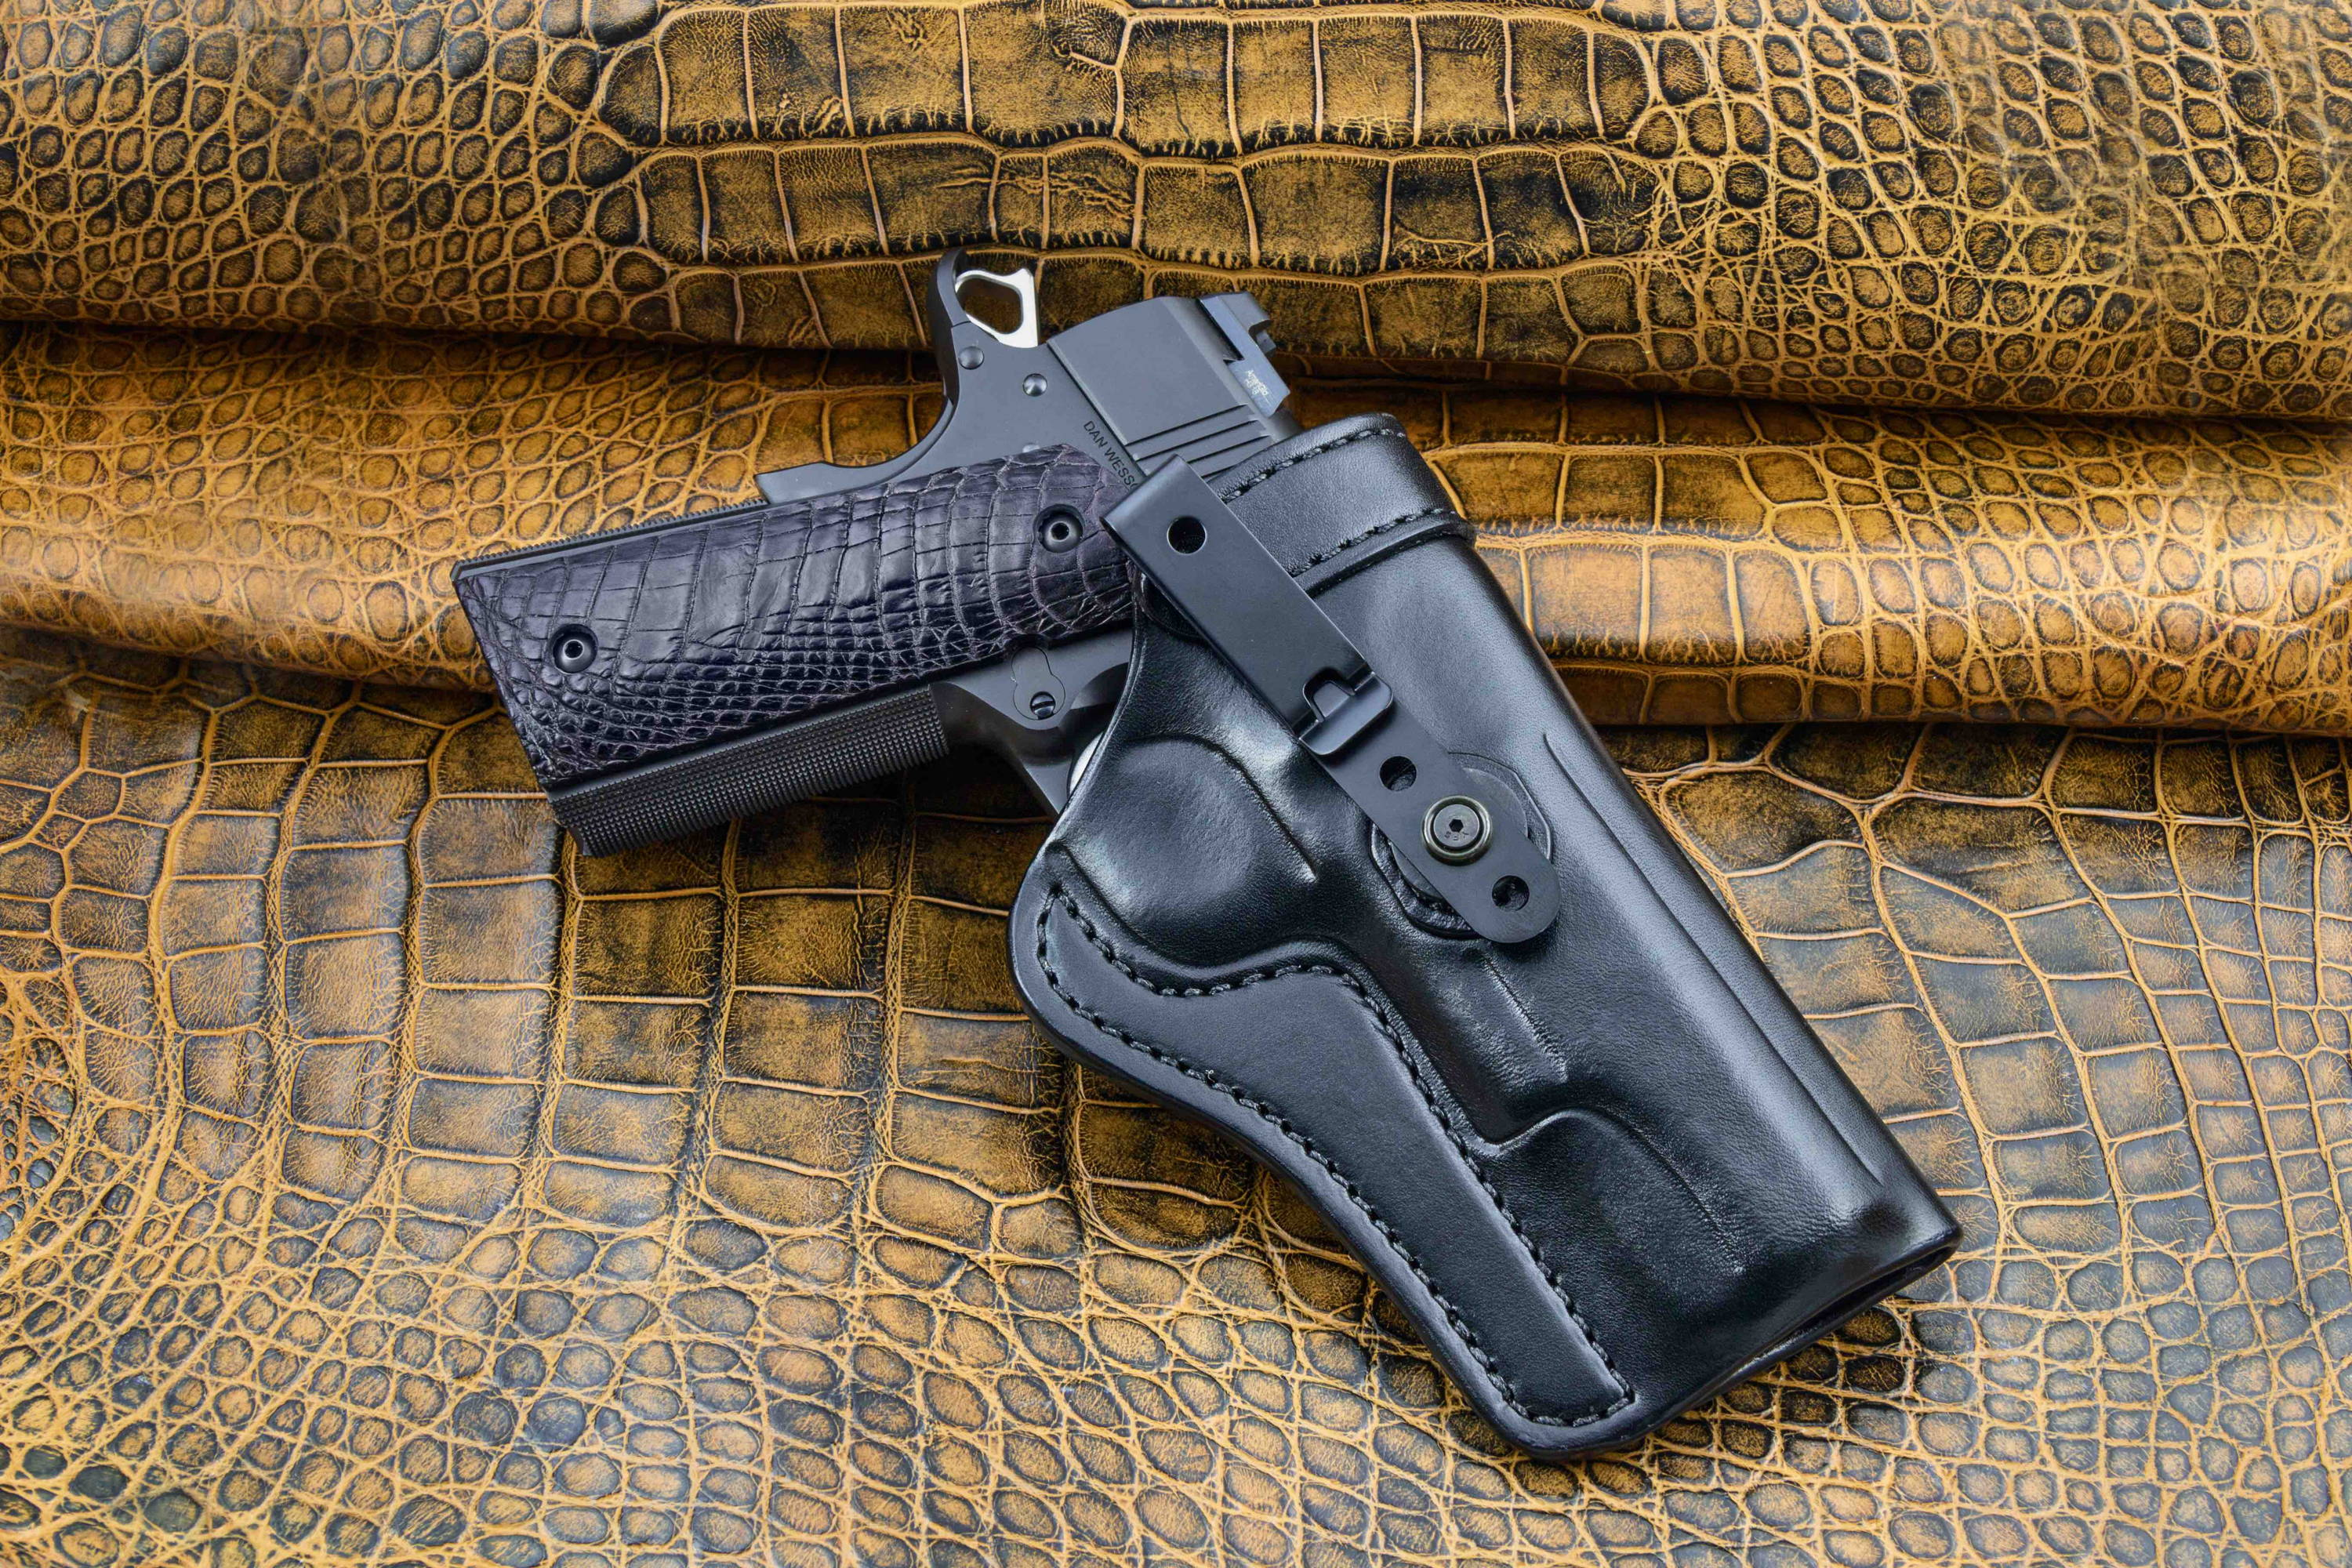 The Urban Holster